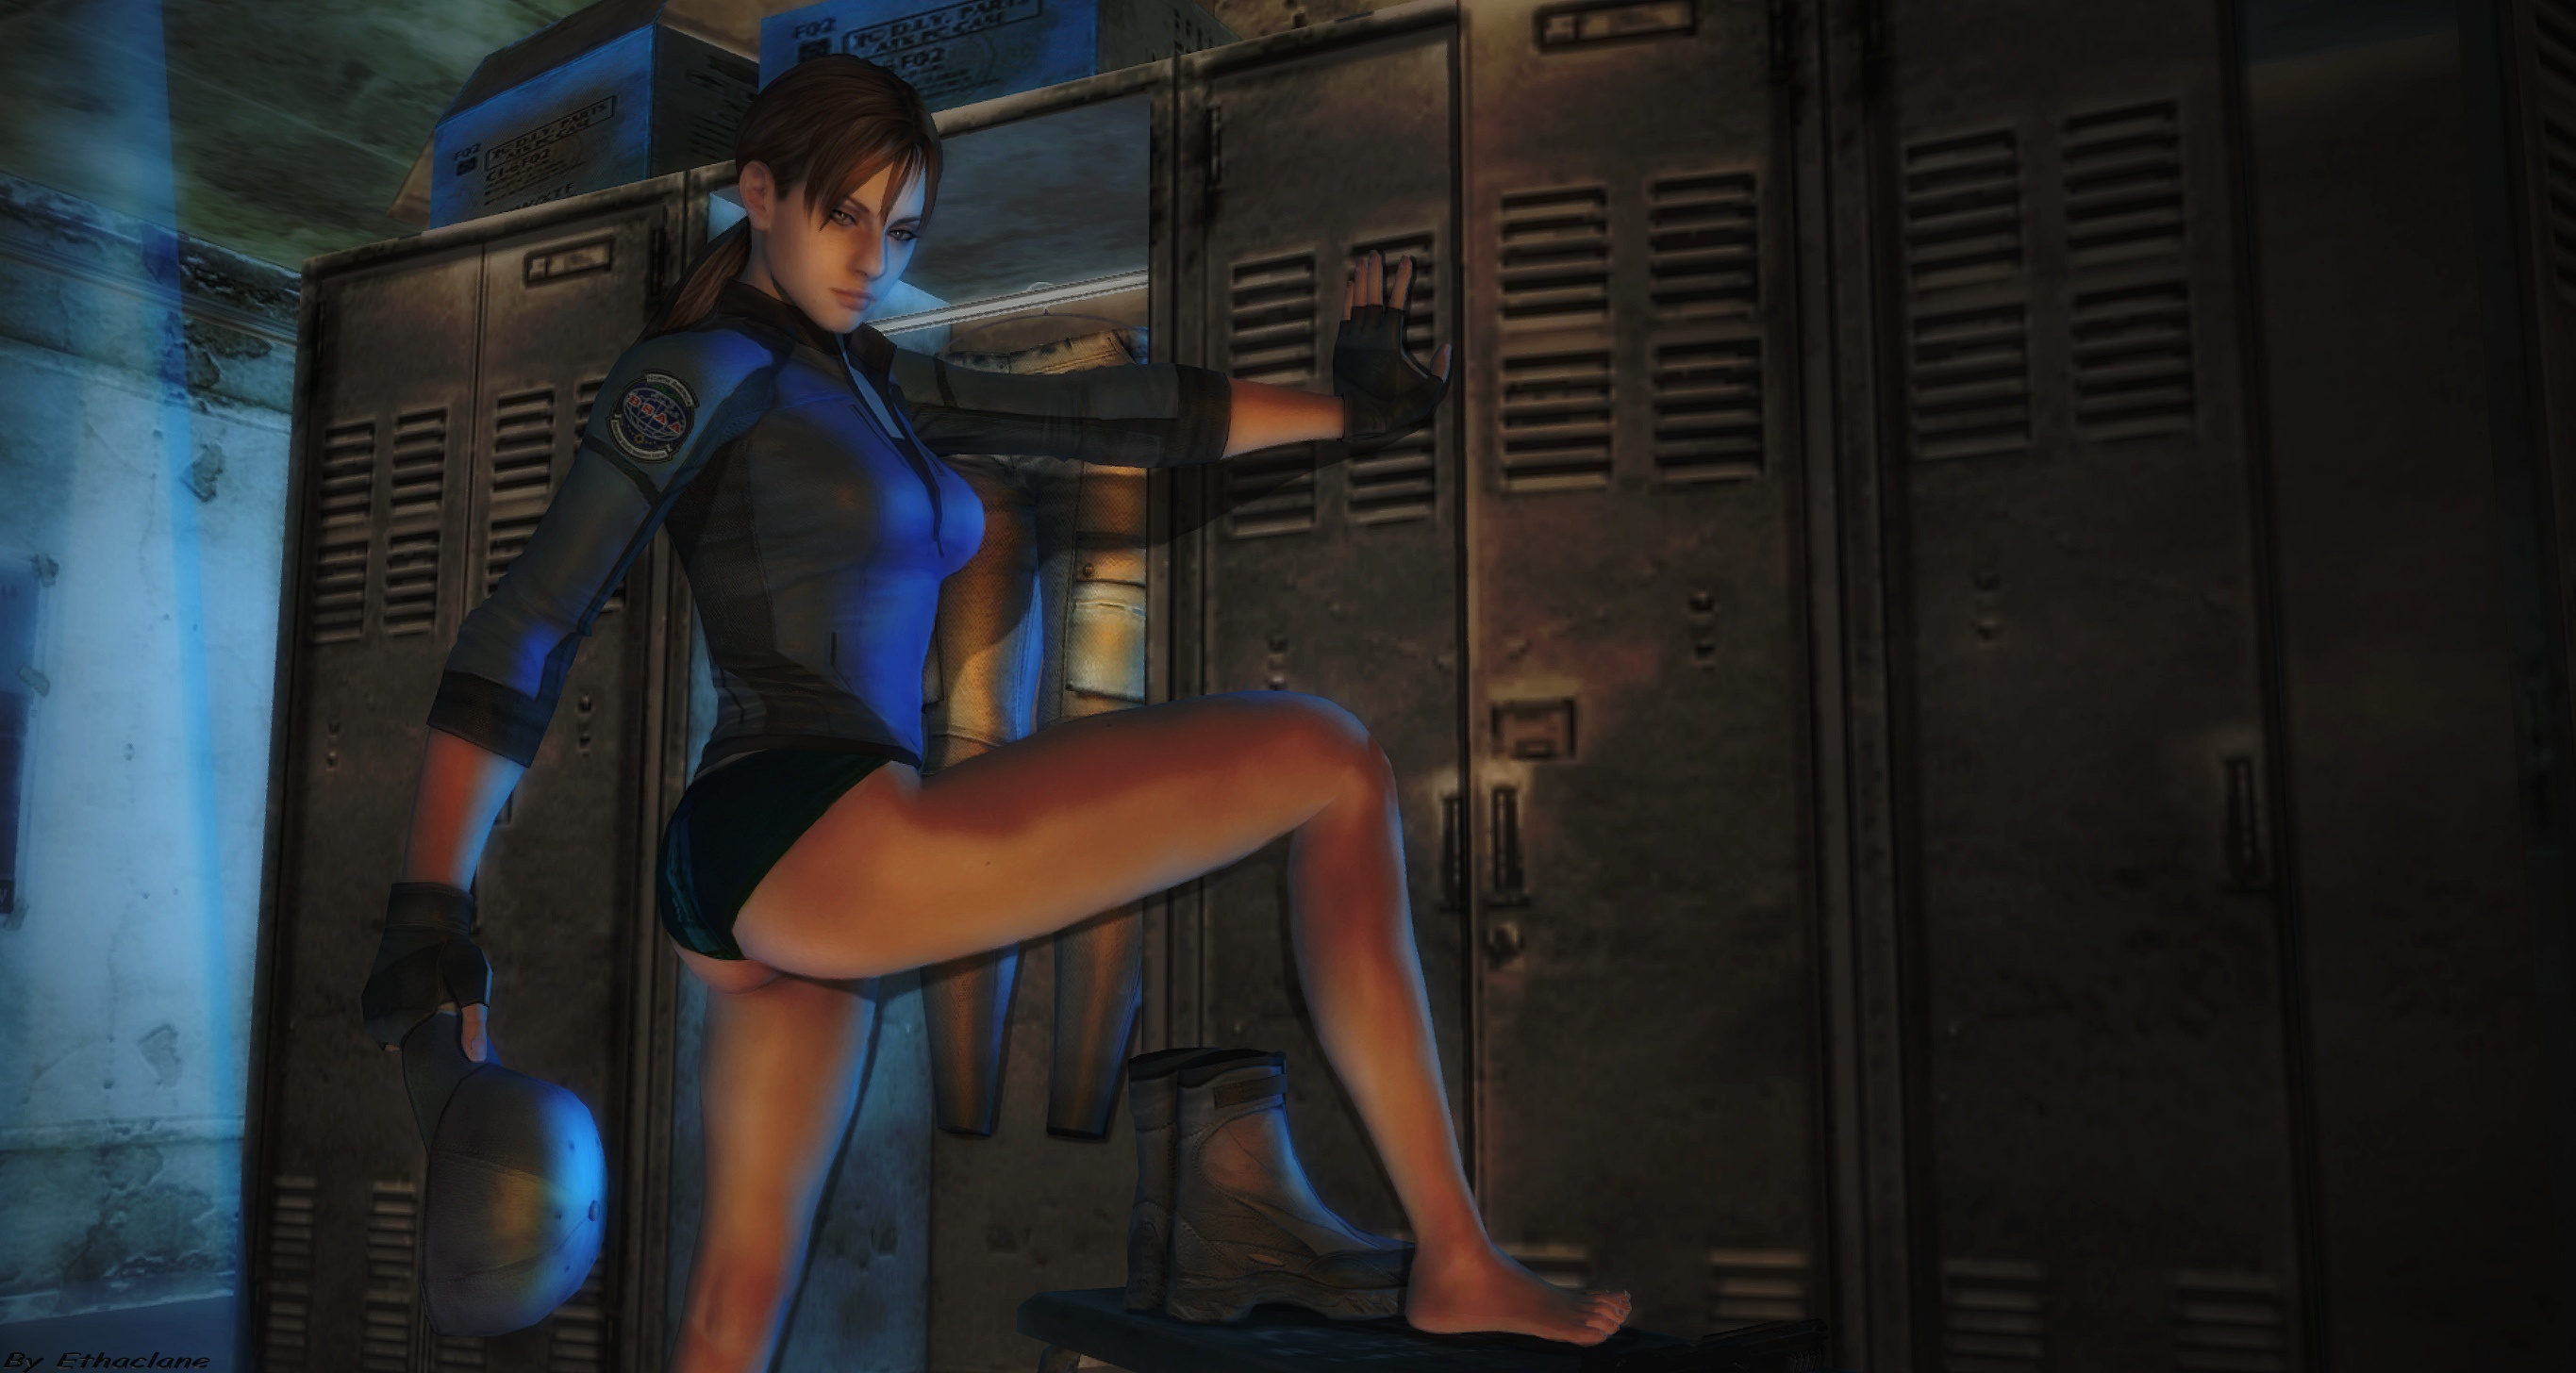 Resident evil 5 nuds girls pic anime photos